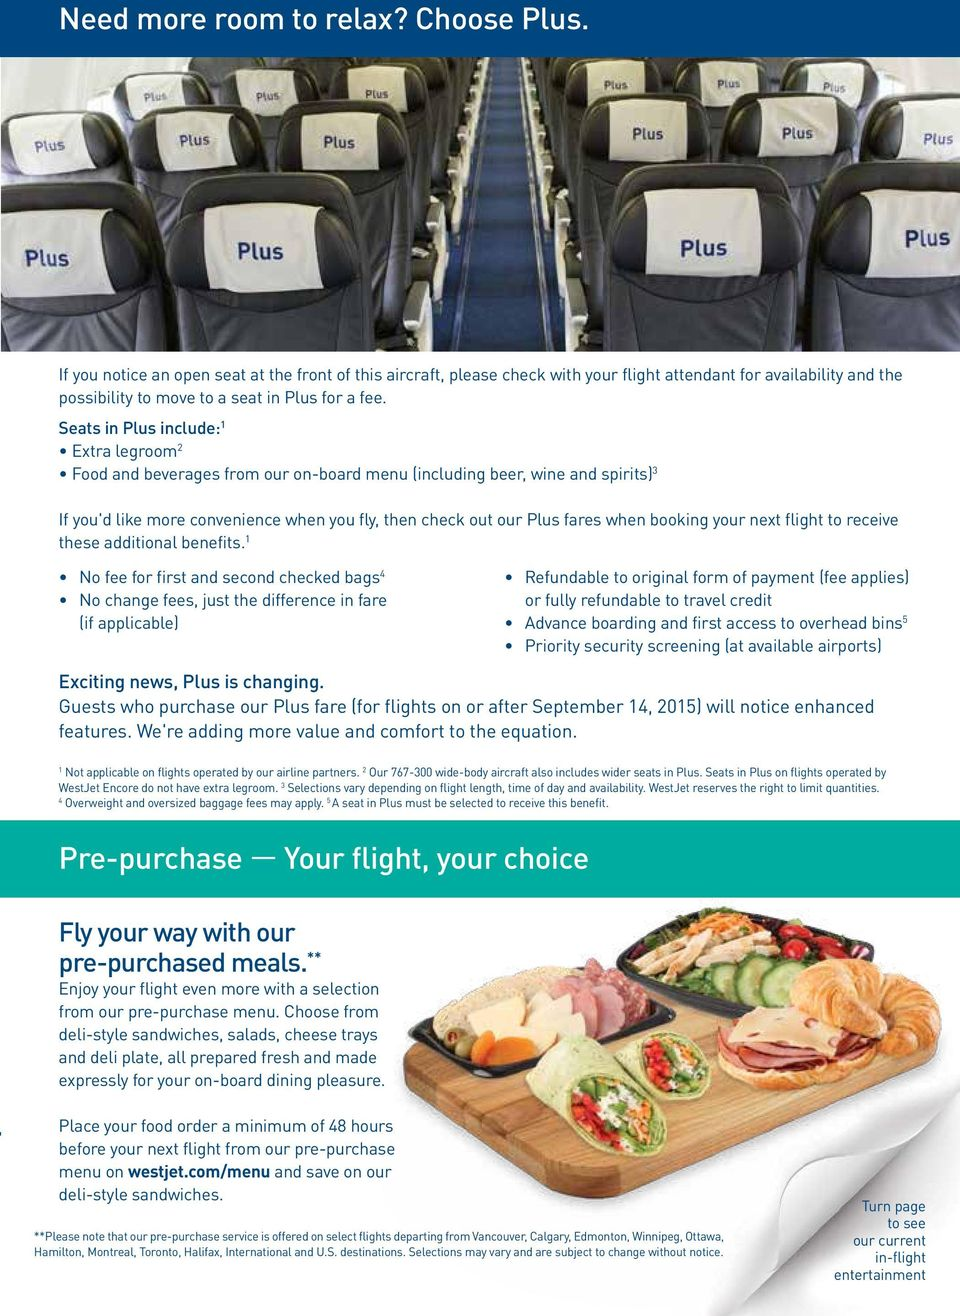 Seats in Plus include: 1 Extra legroom 2 Food and beverages from our on-board menu (including beer, wine and spirits) 3 If you'd like more convenience when you fly, then check out our Plus fares when